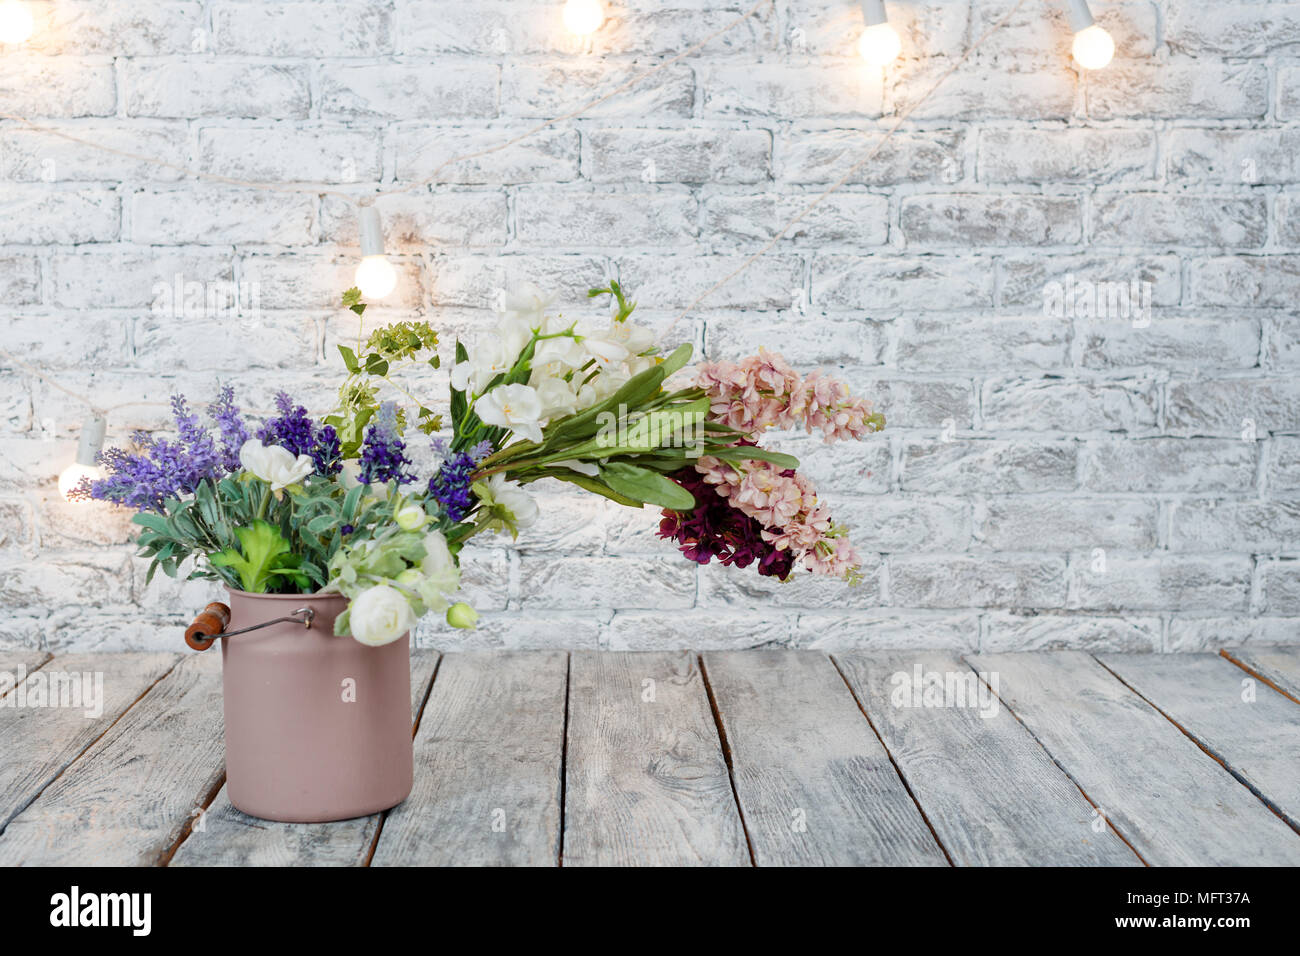 Flowers With Light Bulbs On White Brick Background With Wooden Floor